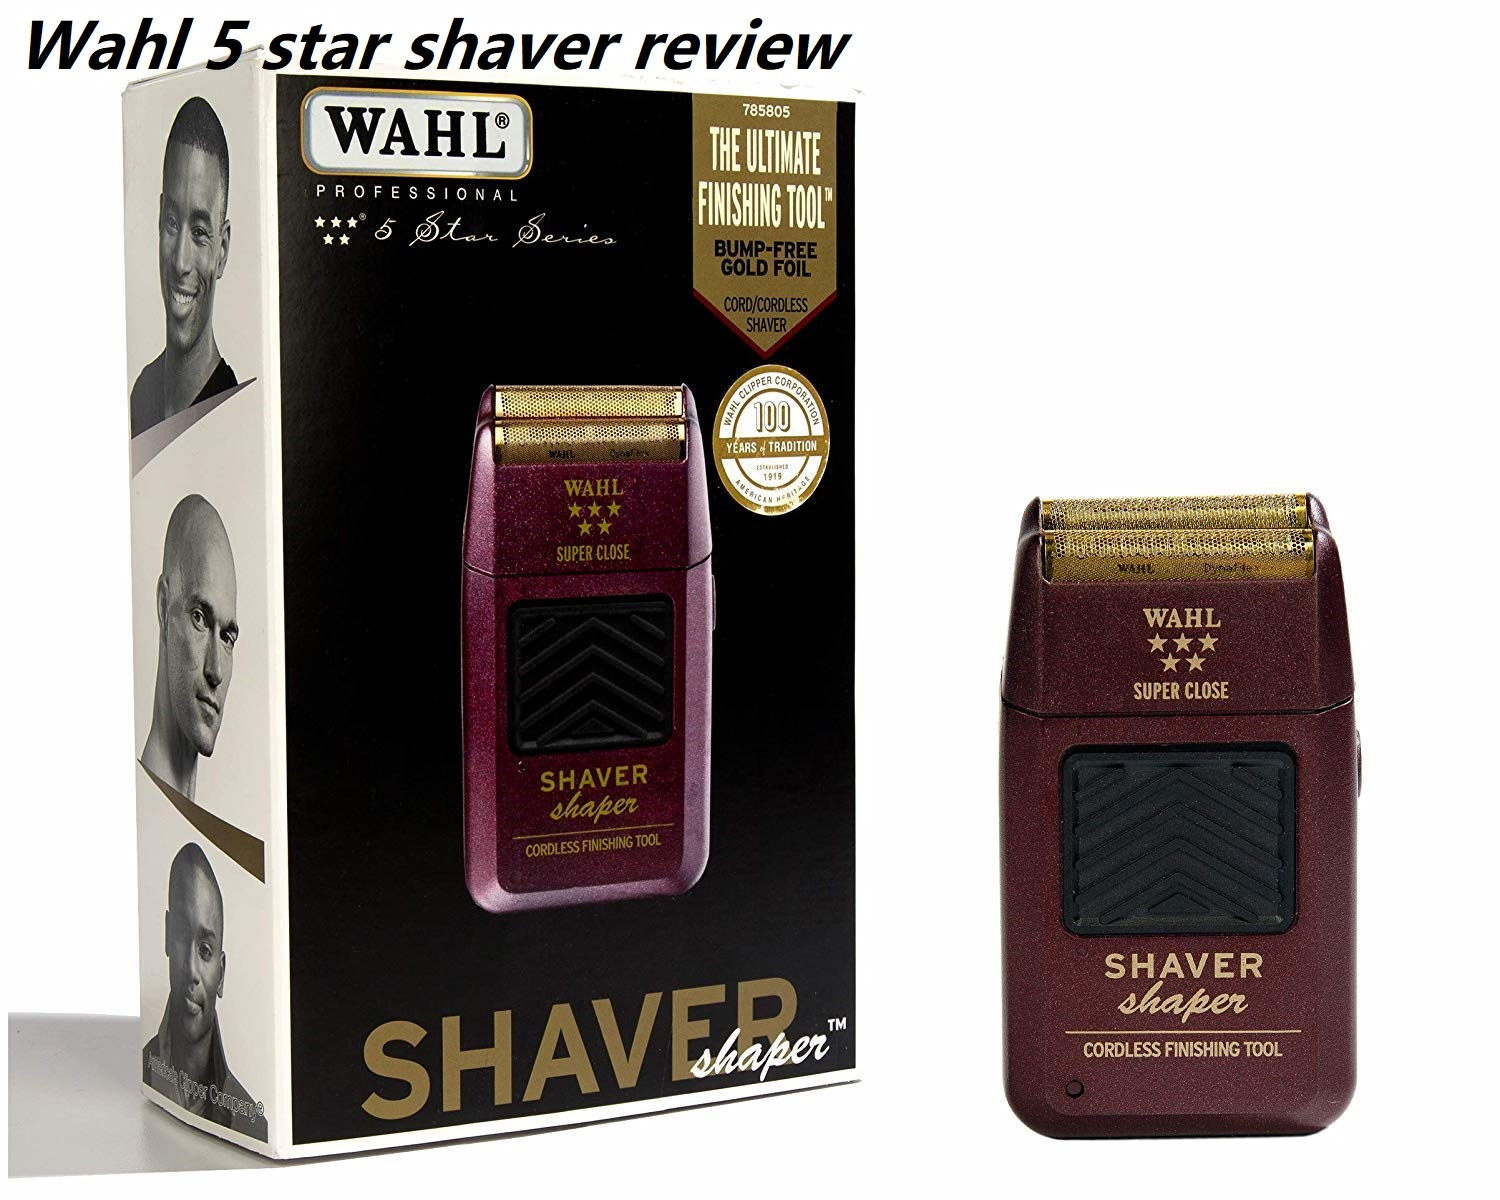 Wahl 5 star shaver review